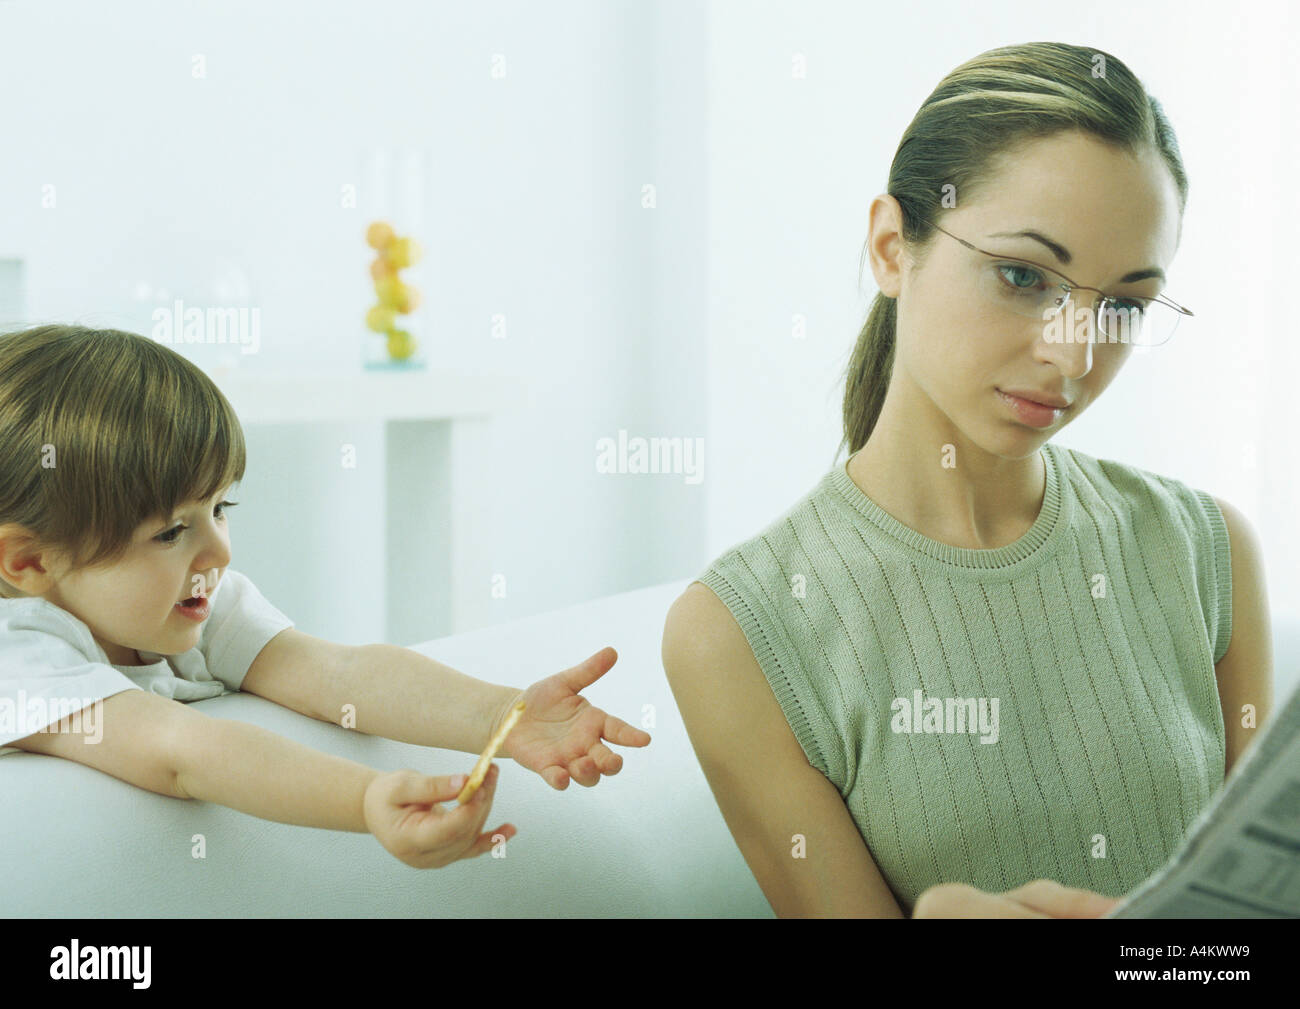 Young woman reading newspaper, ignoring little girl reaching out to her - Stock Image